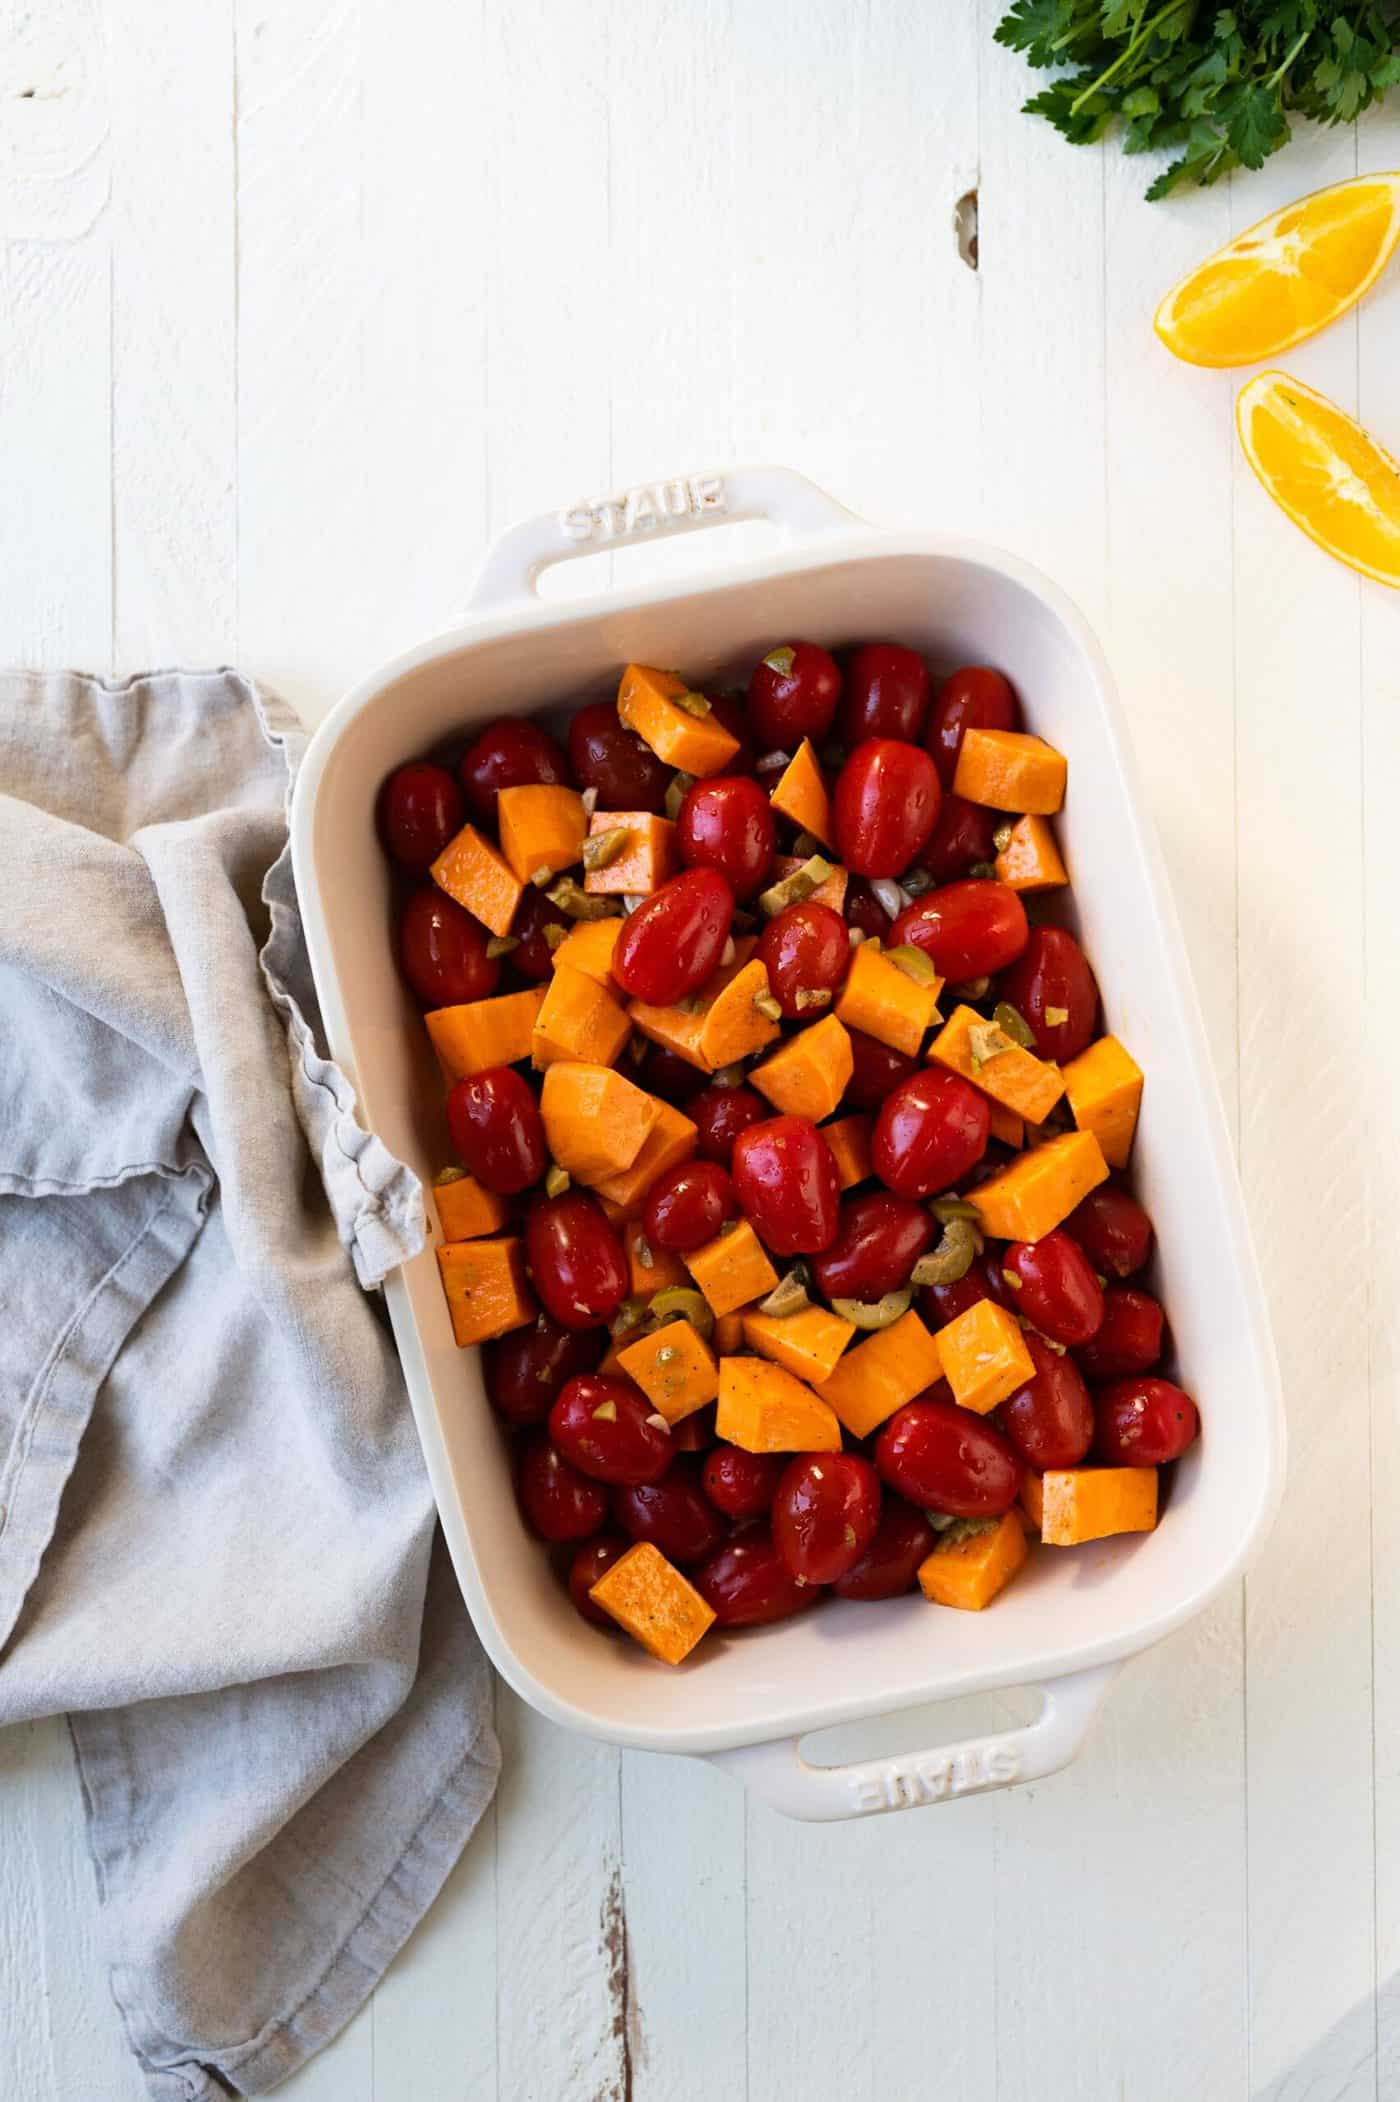 Roasted Sweet Potatoes and Tomatoes -- an easy weeknight vegan sheetpan meal (via thepigandquill.com)